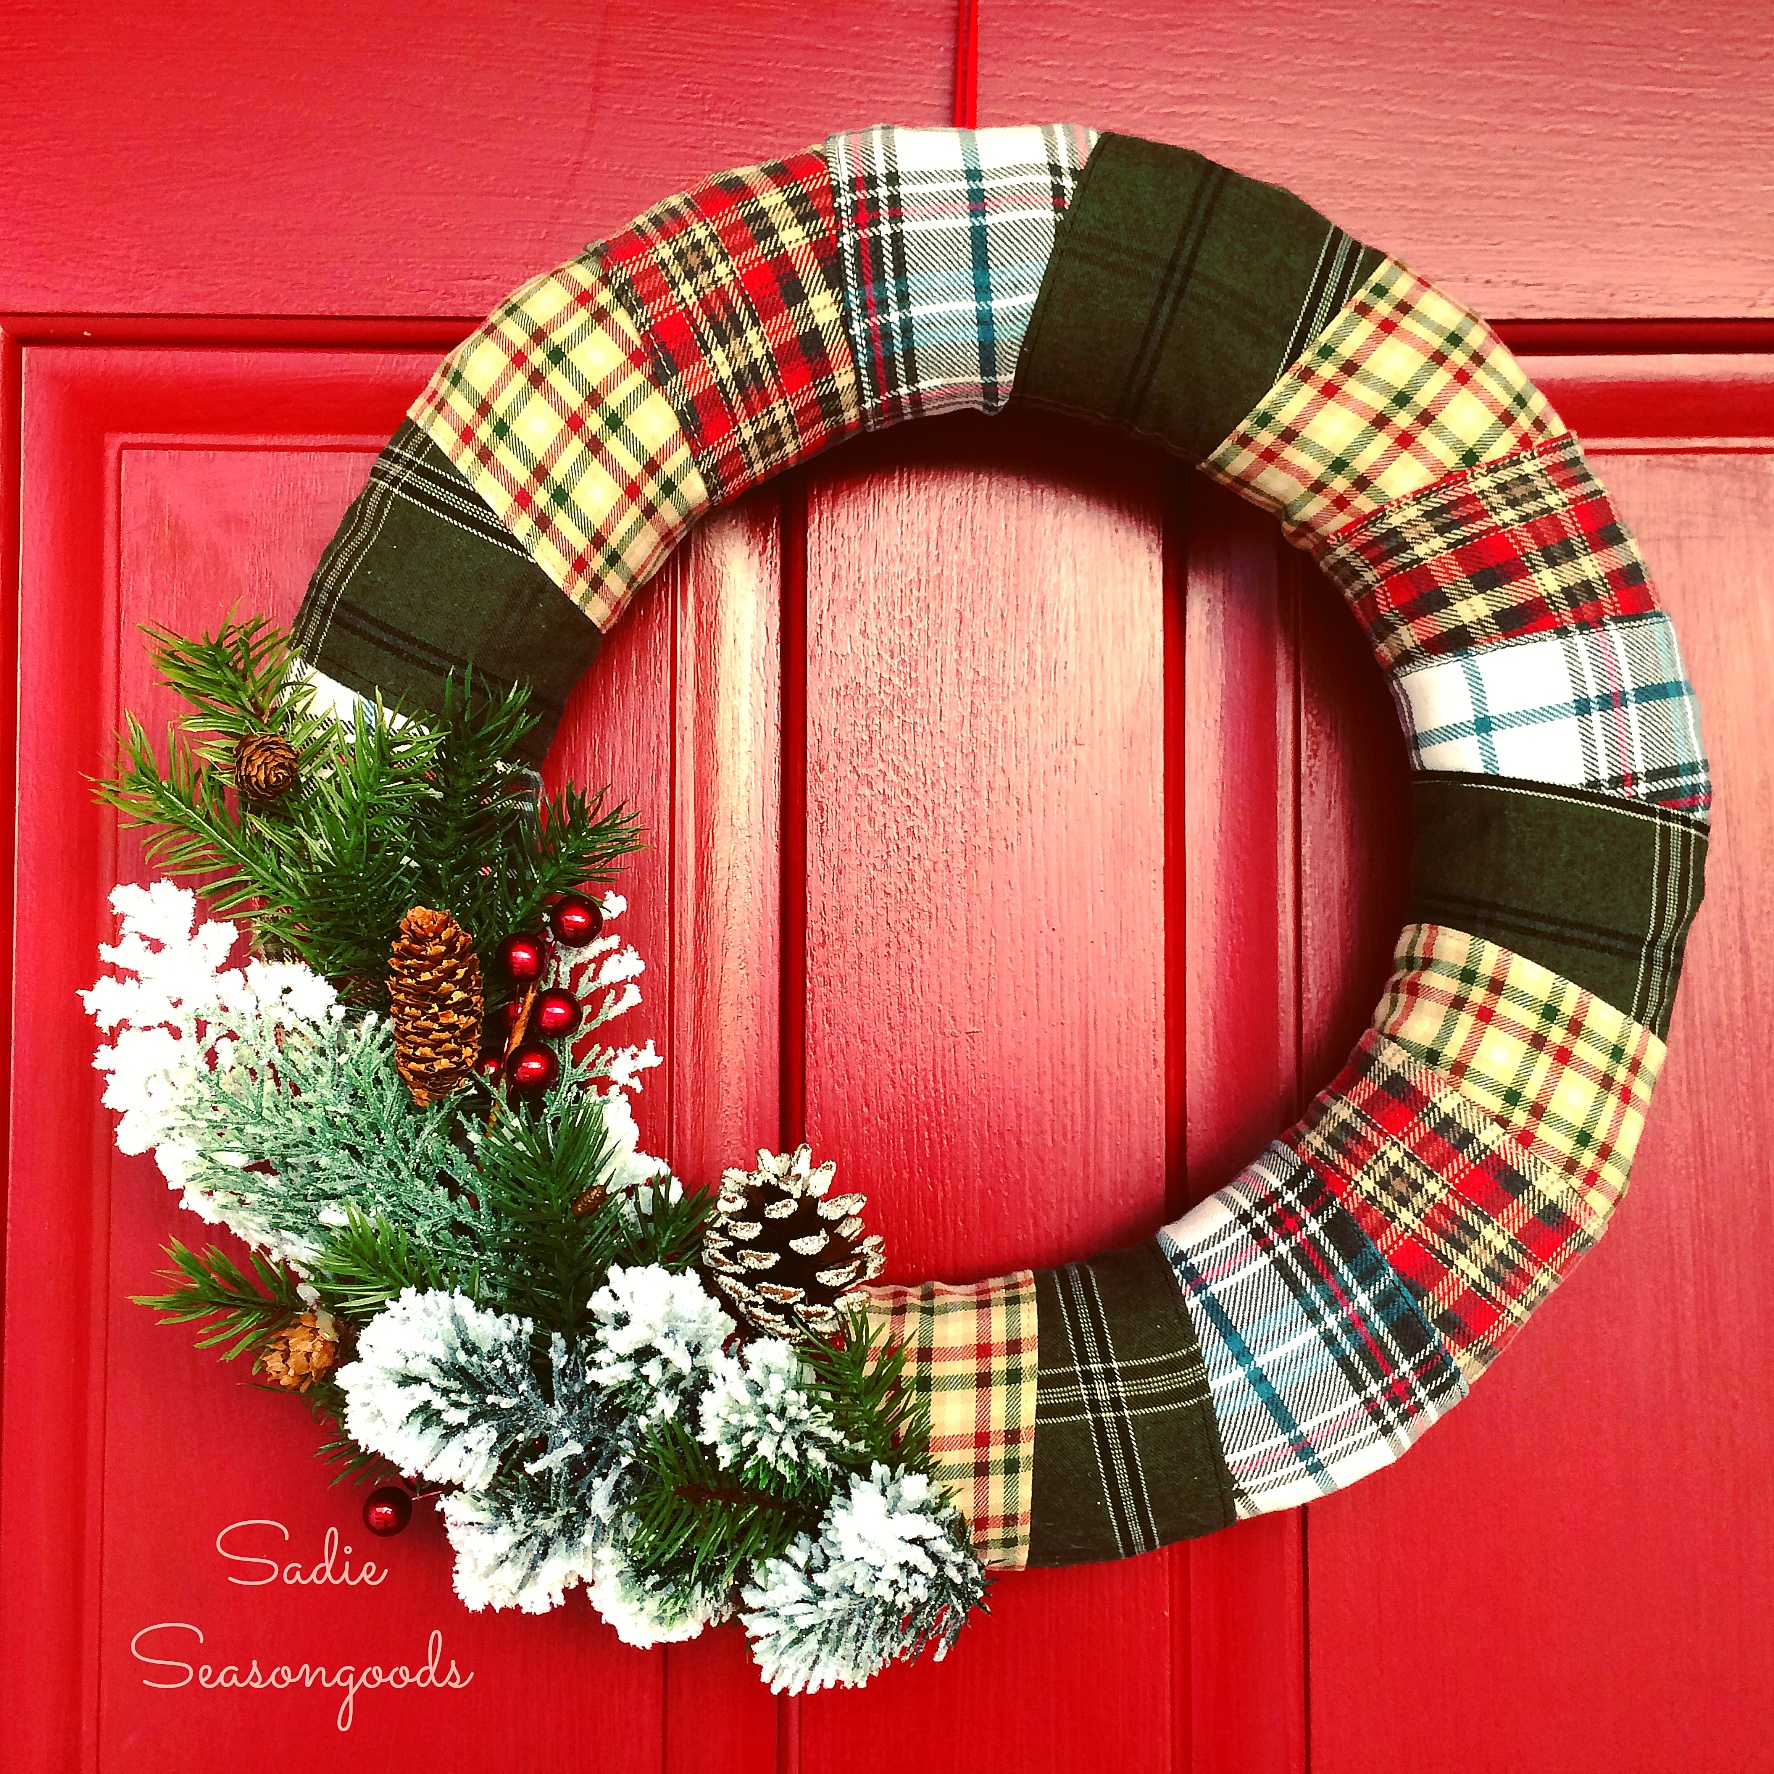 40+ DIY Christmas Wreath Ideas - How To Make Holiday Wreaths Crafts